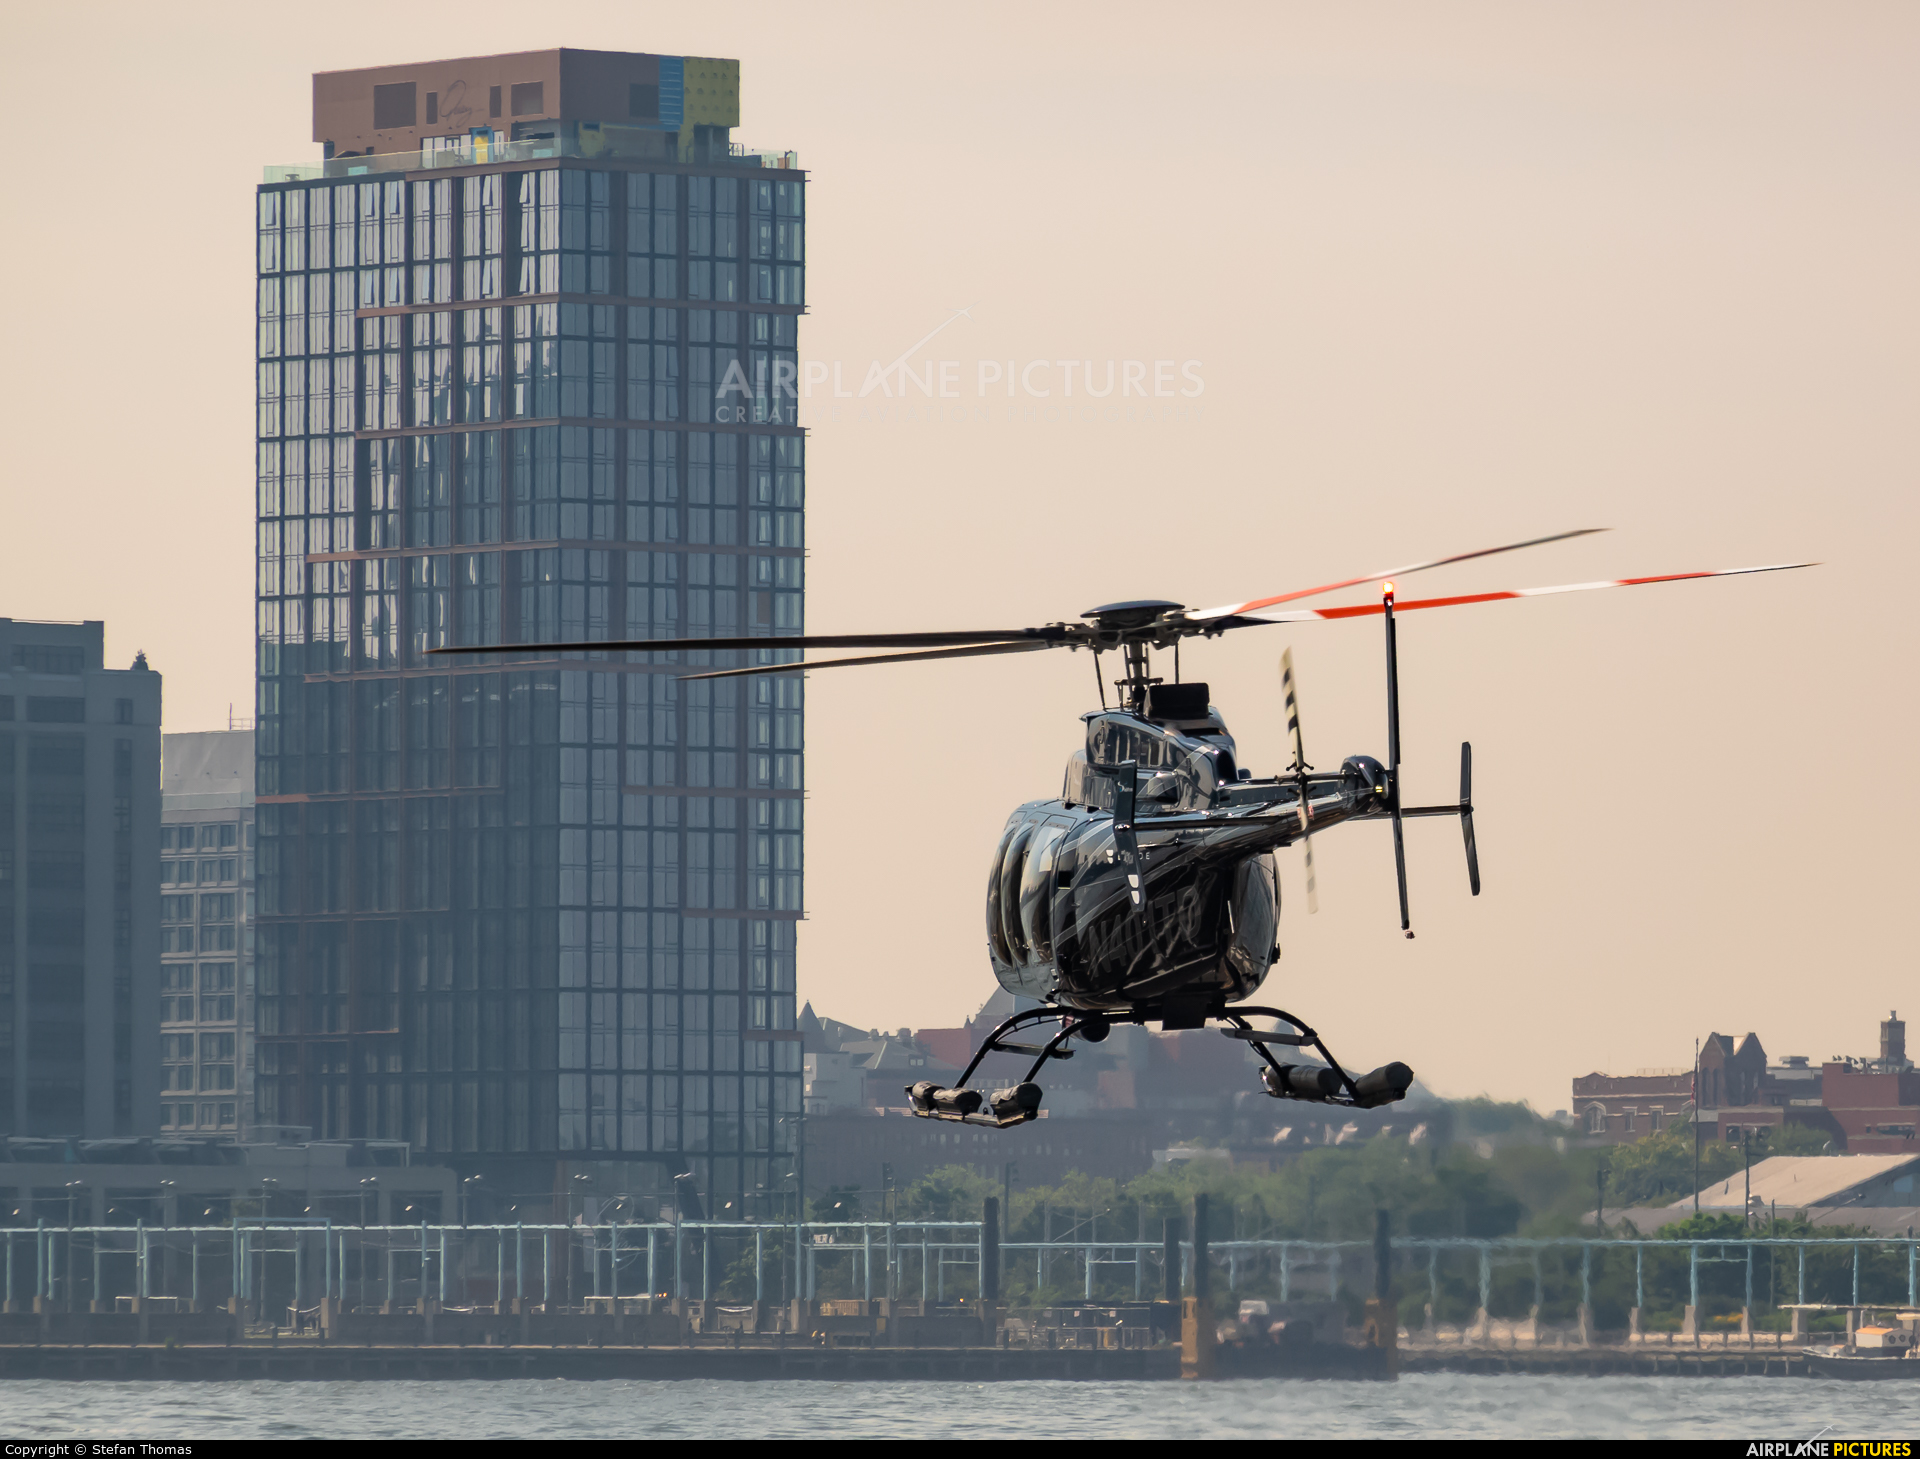 Snackbar Aviation N401TD aircraft at Downtown Manhattan Heliport